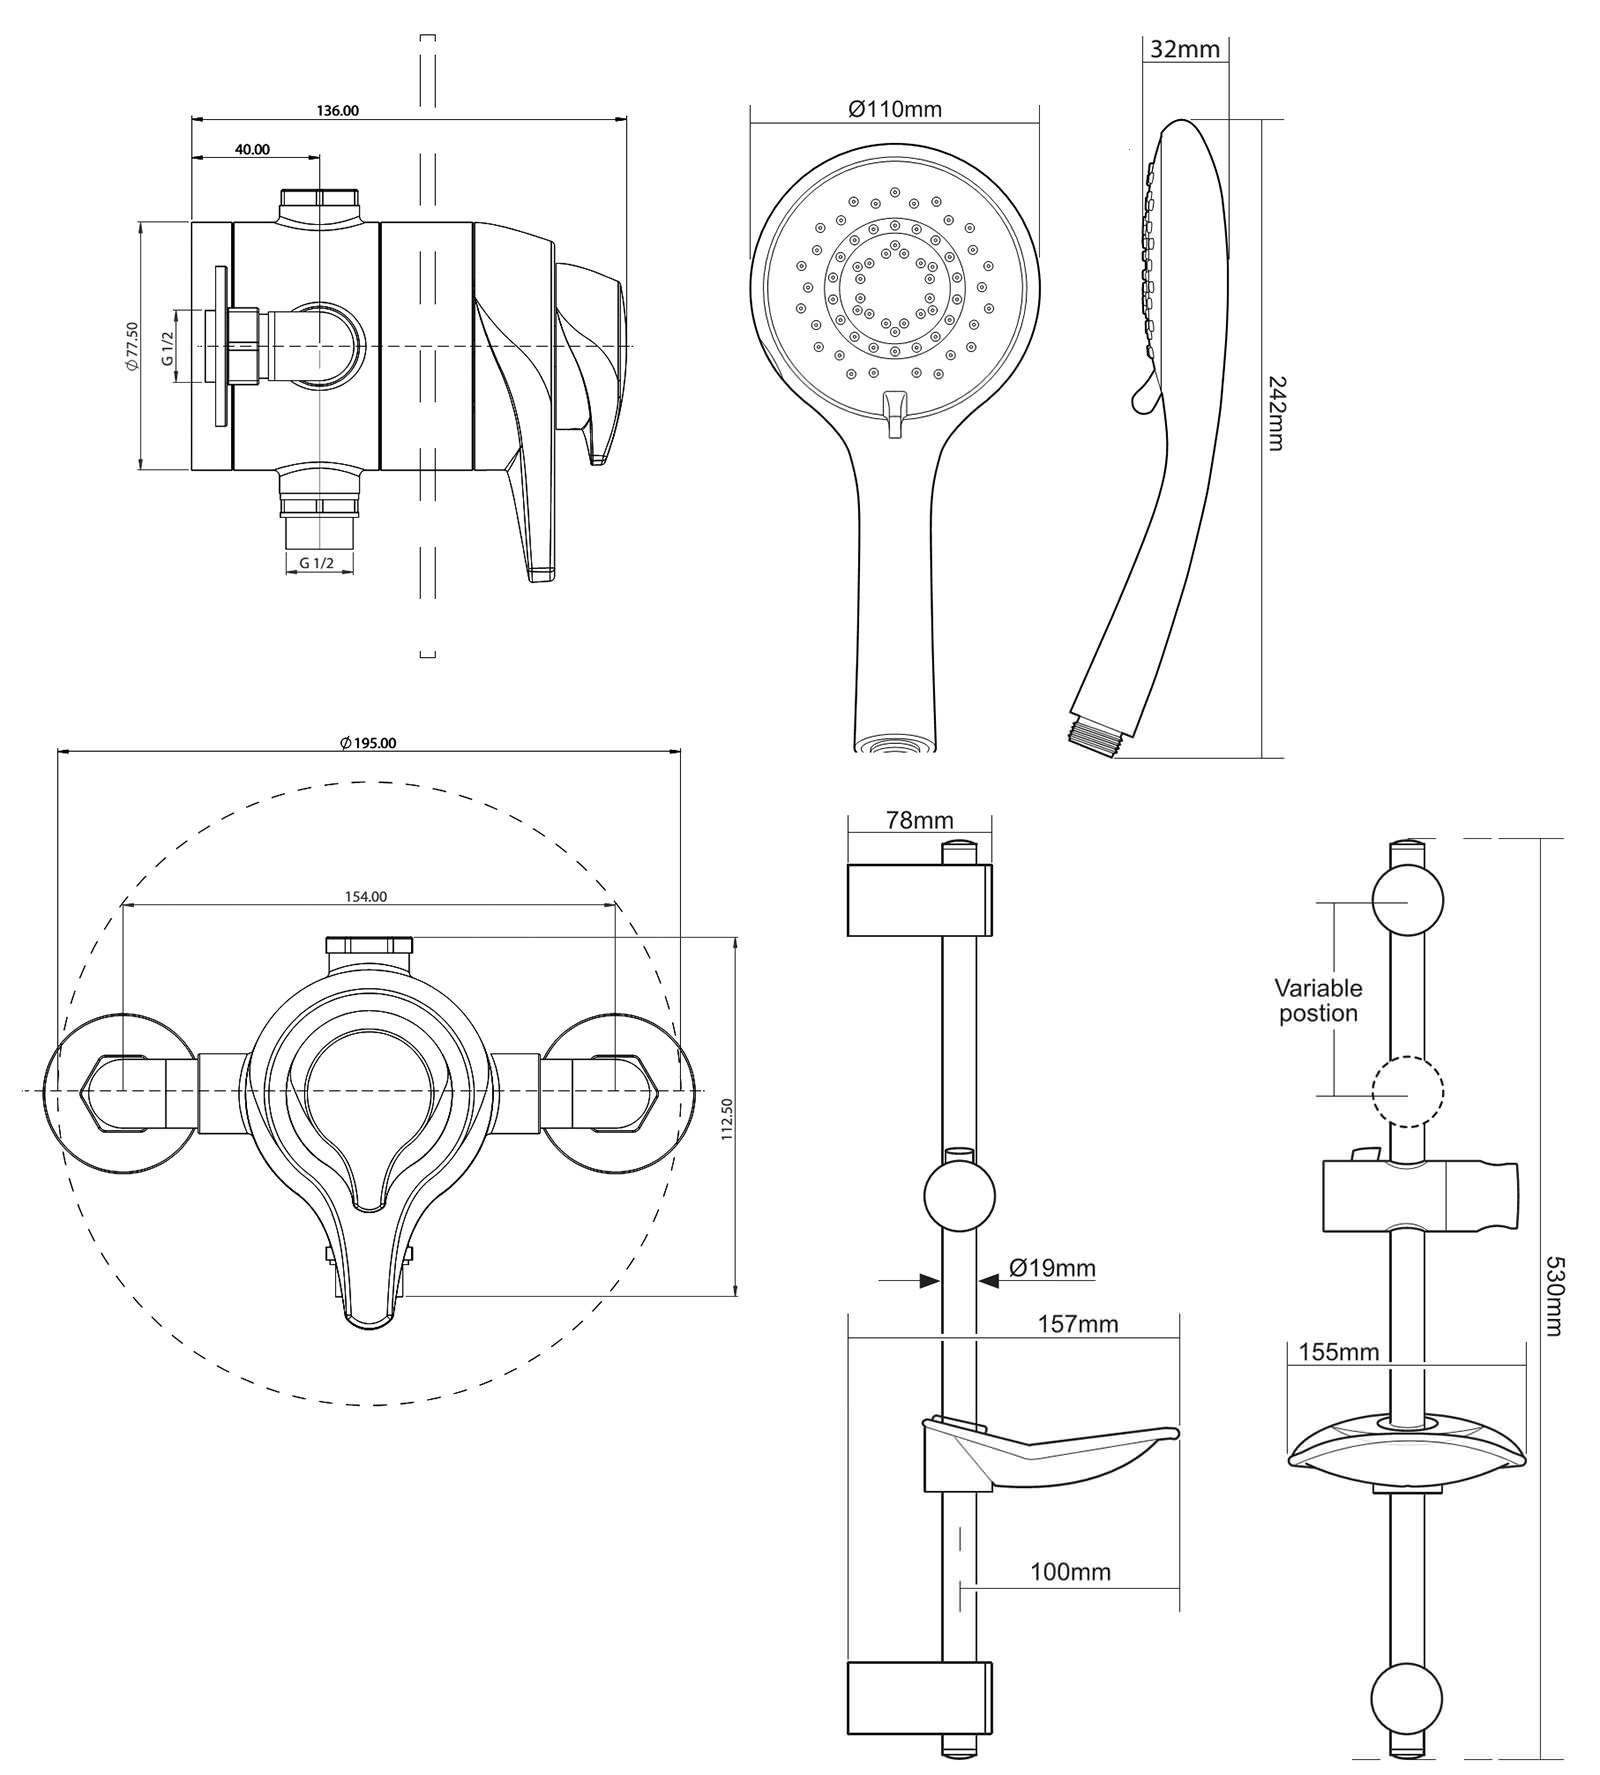 triton eden eco concentric mixer shower set Shower Drain Assembly triton eden eco concentric mixer shower set technical drawing qs v29058 ecoedthcm